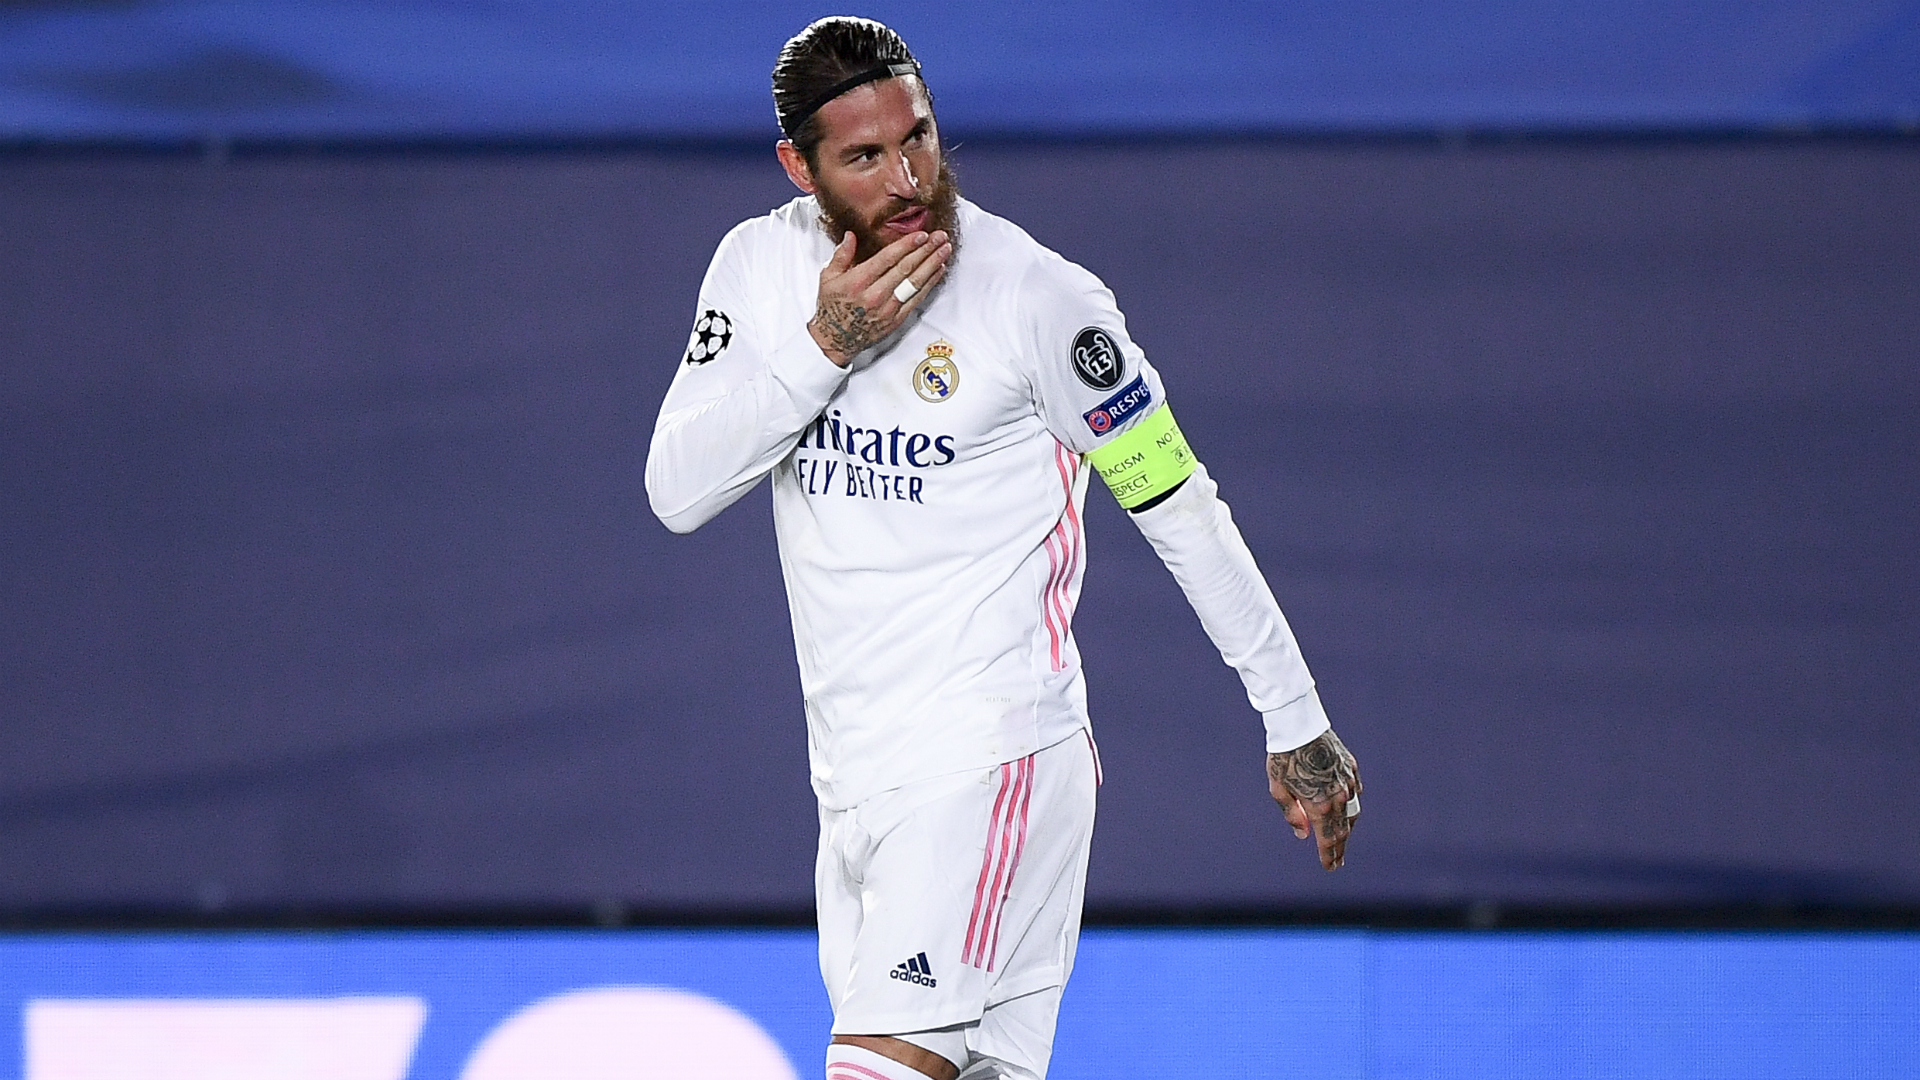 Rumour Has It: Real Madrid's contract negotiations with Ramos at a standstill, no PSG contact